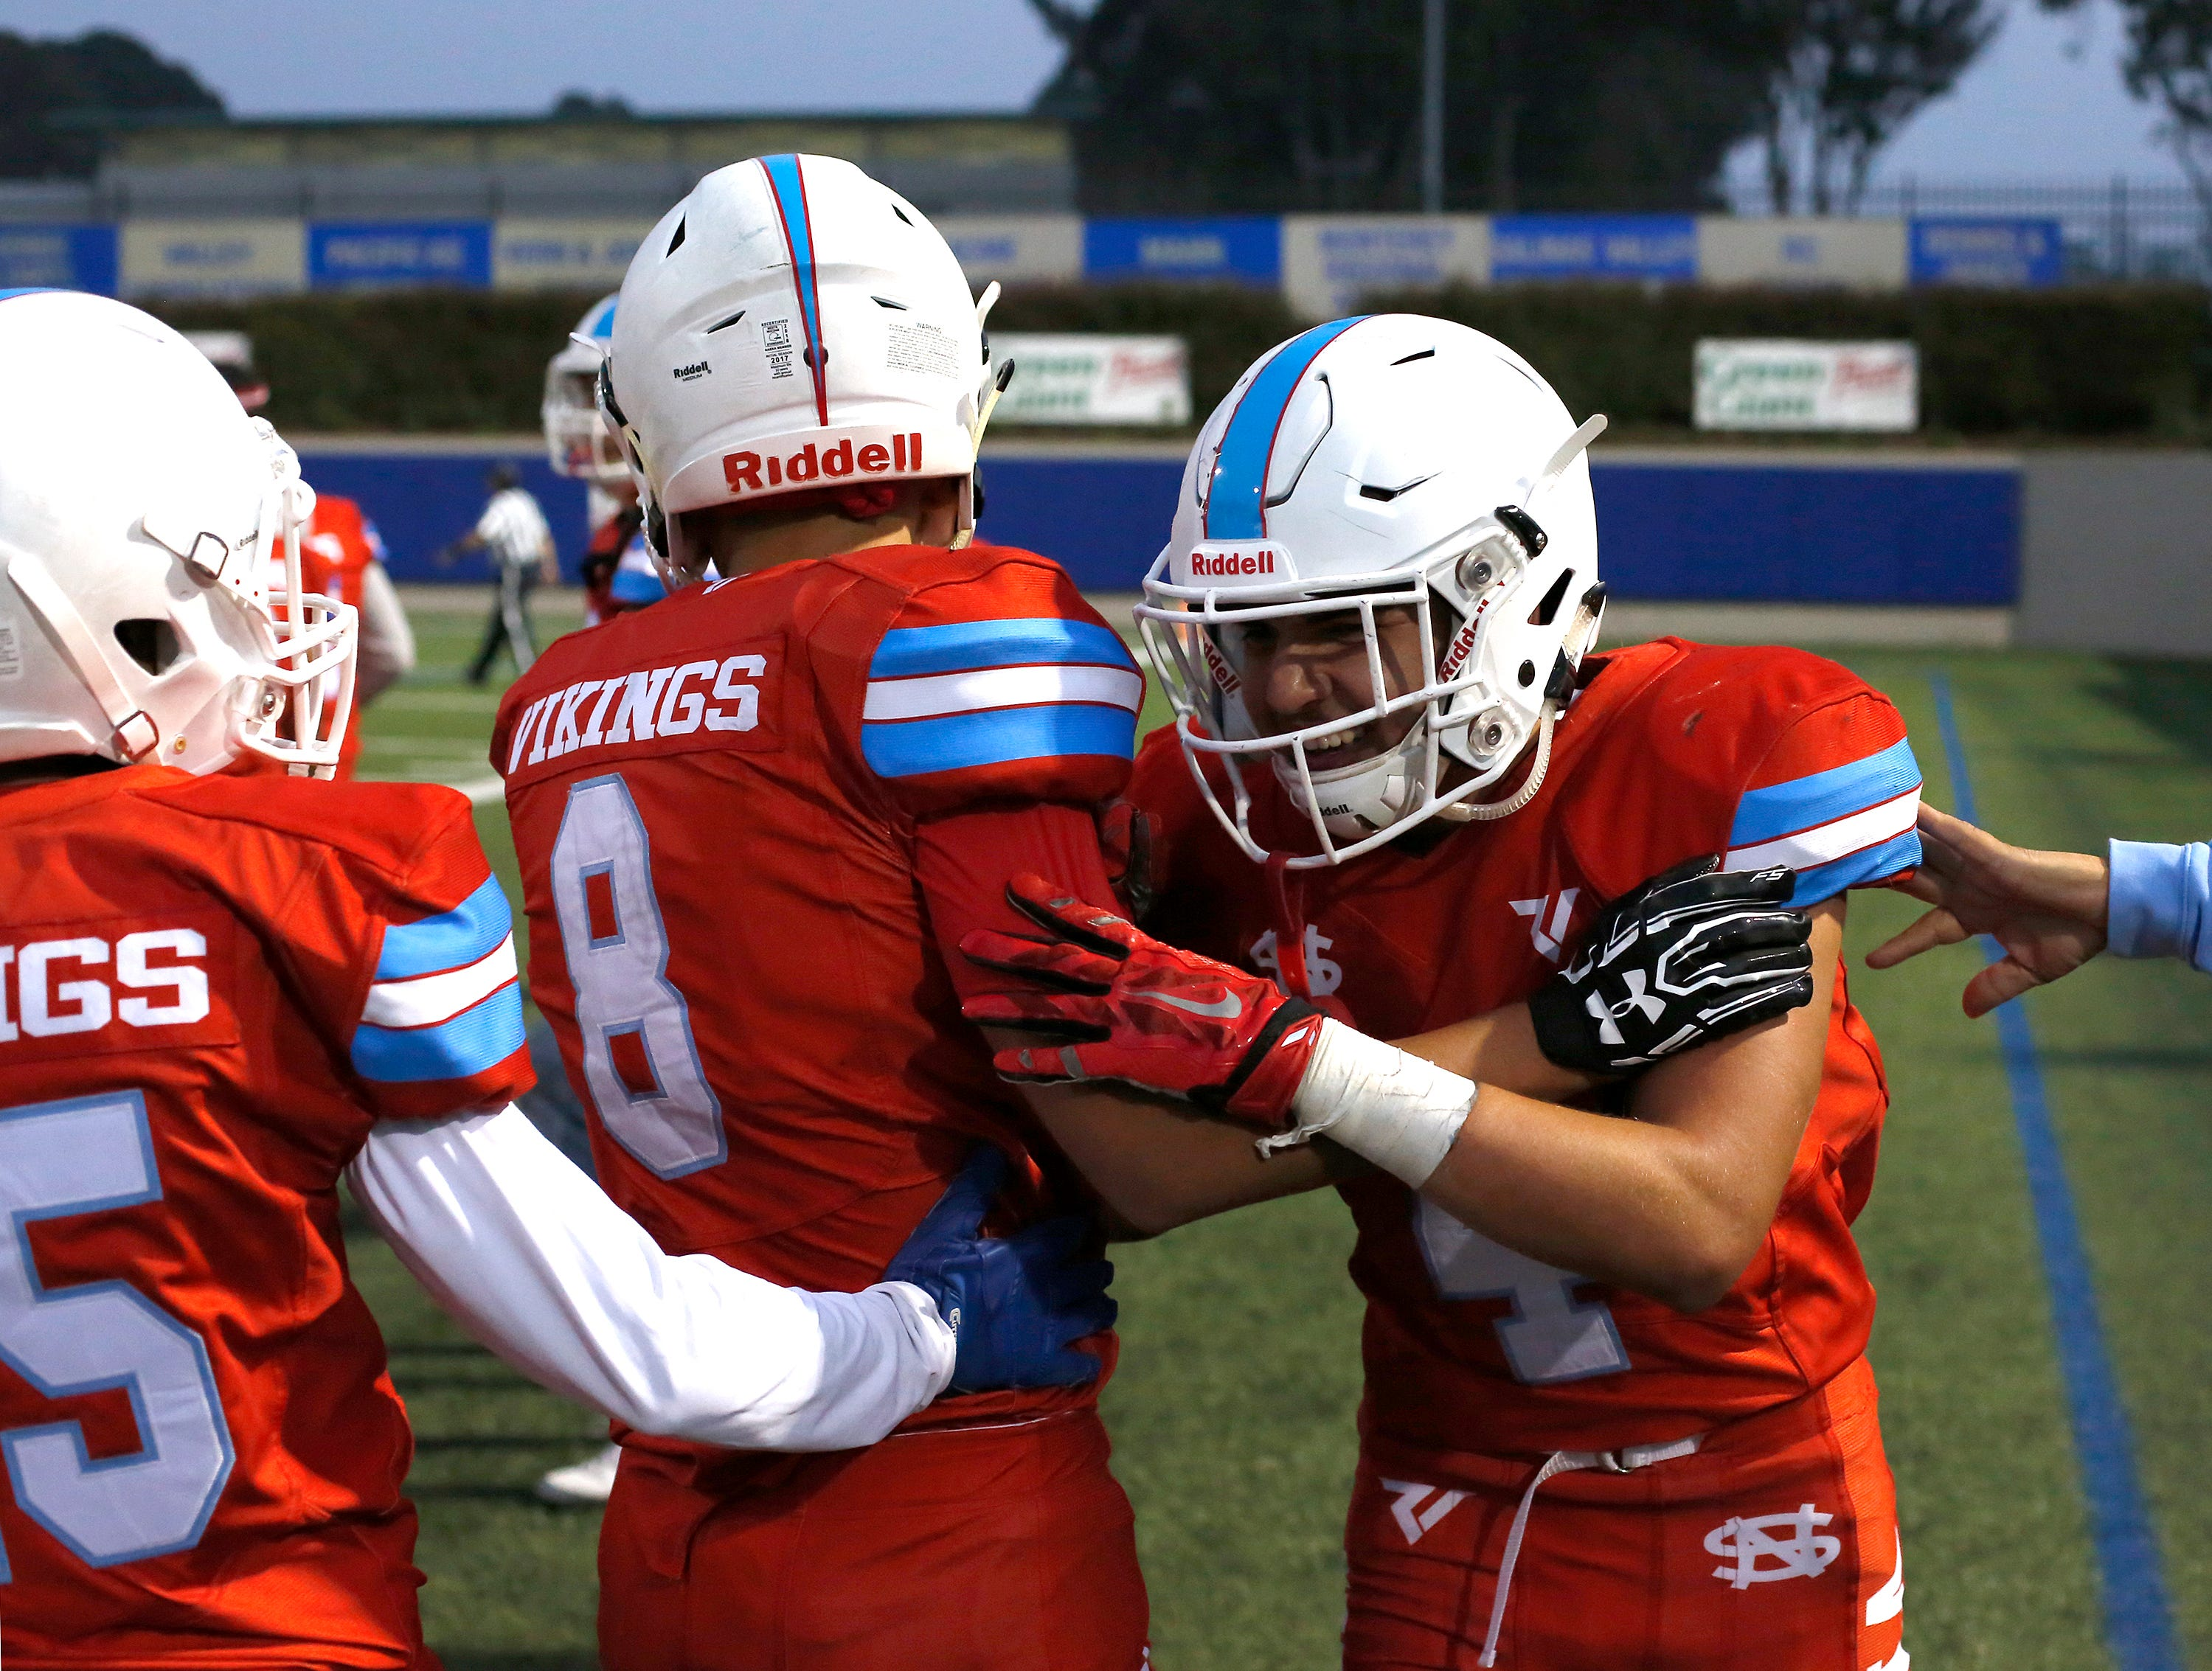 North Salinas's Matt Morales, right, is greeted by team mates after running in a touchdown against North Monterey County during football at Rabobank Stadium in Salinas on Thursday August 23, 2018.